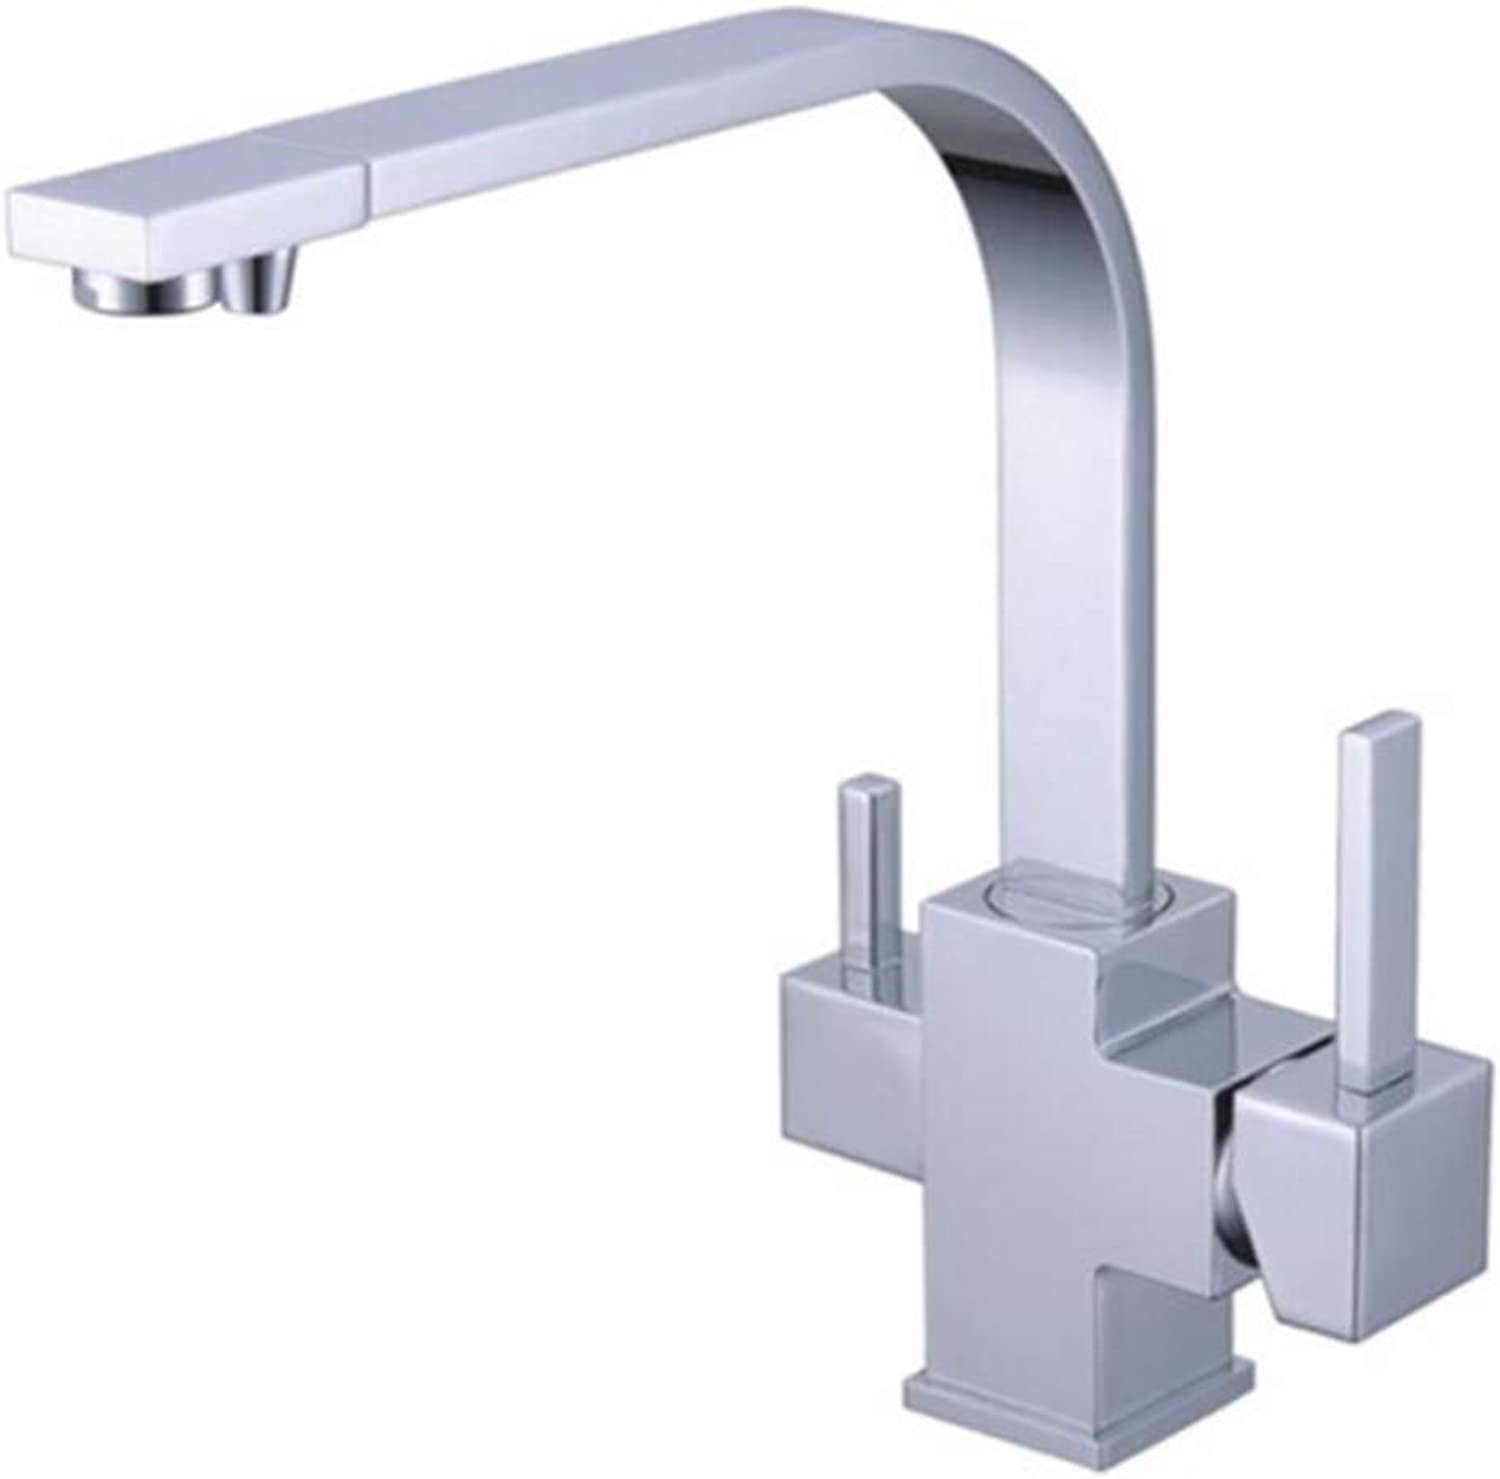 Taps Kitchen Basin Bathroom Washroomkitchen Faucet Three Way Tap for Water Filter